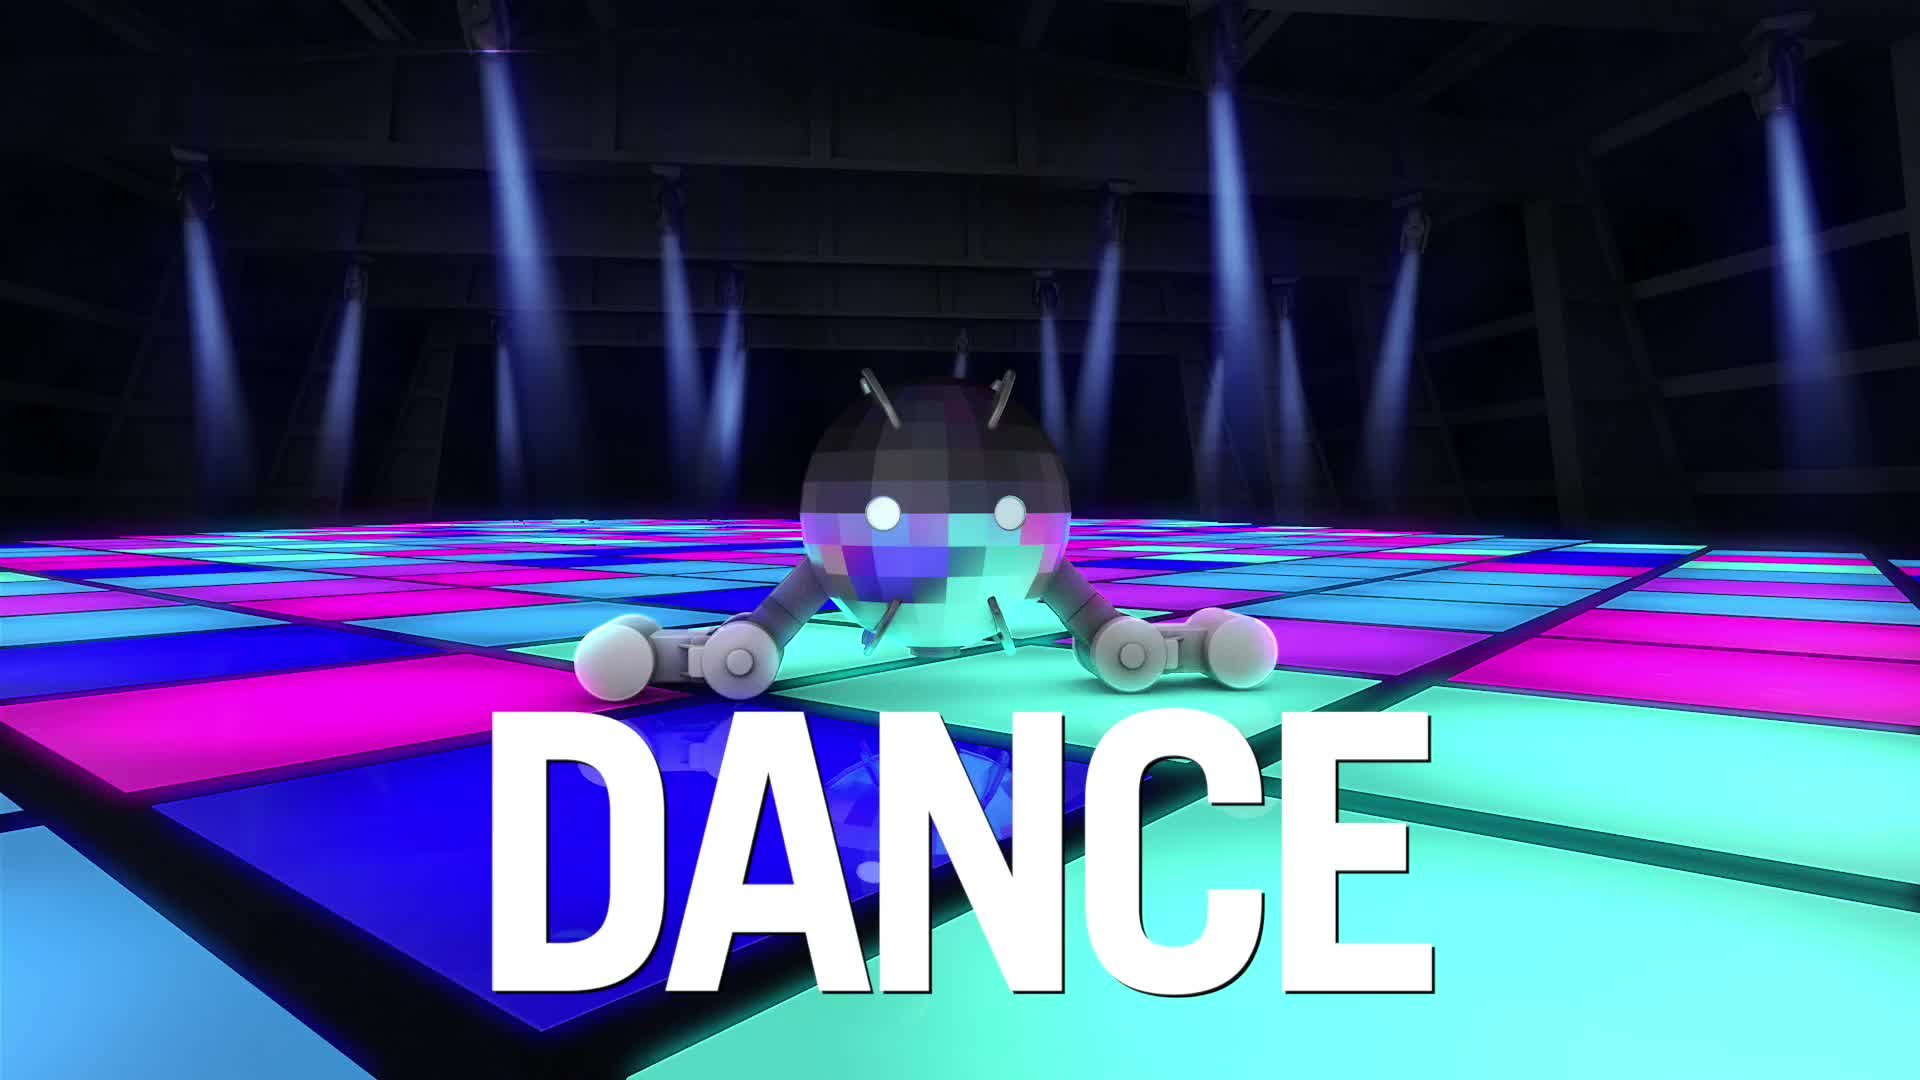 A Dancy Beatz toy with the word Dance superimposed